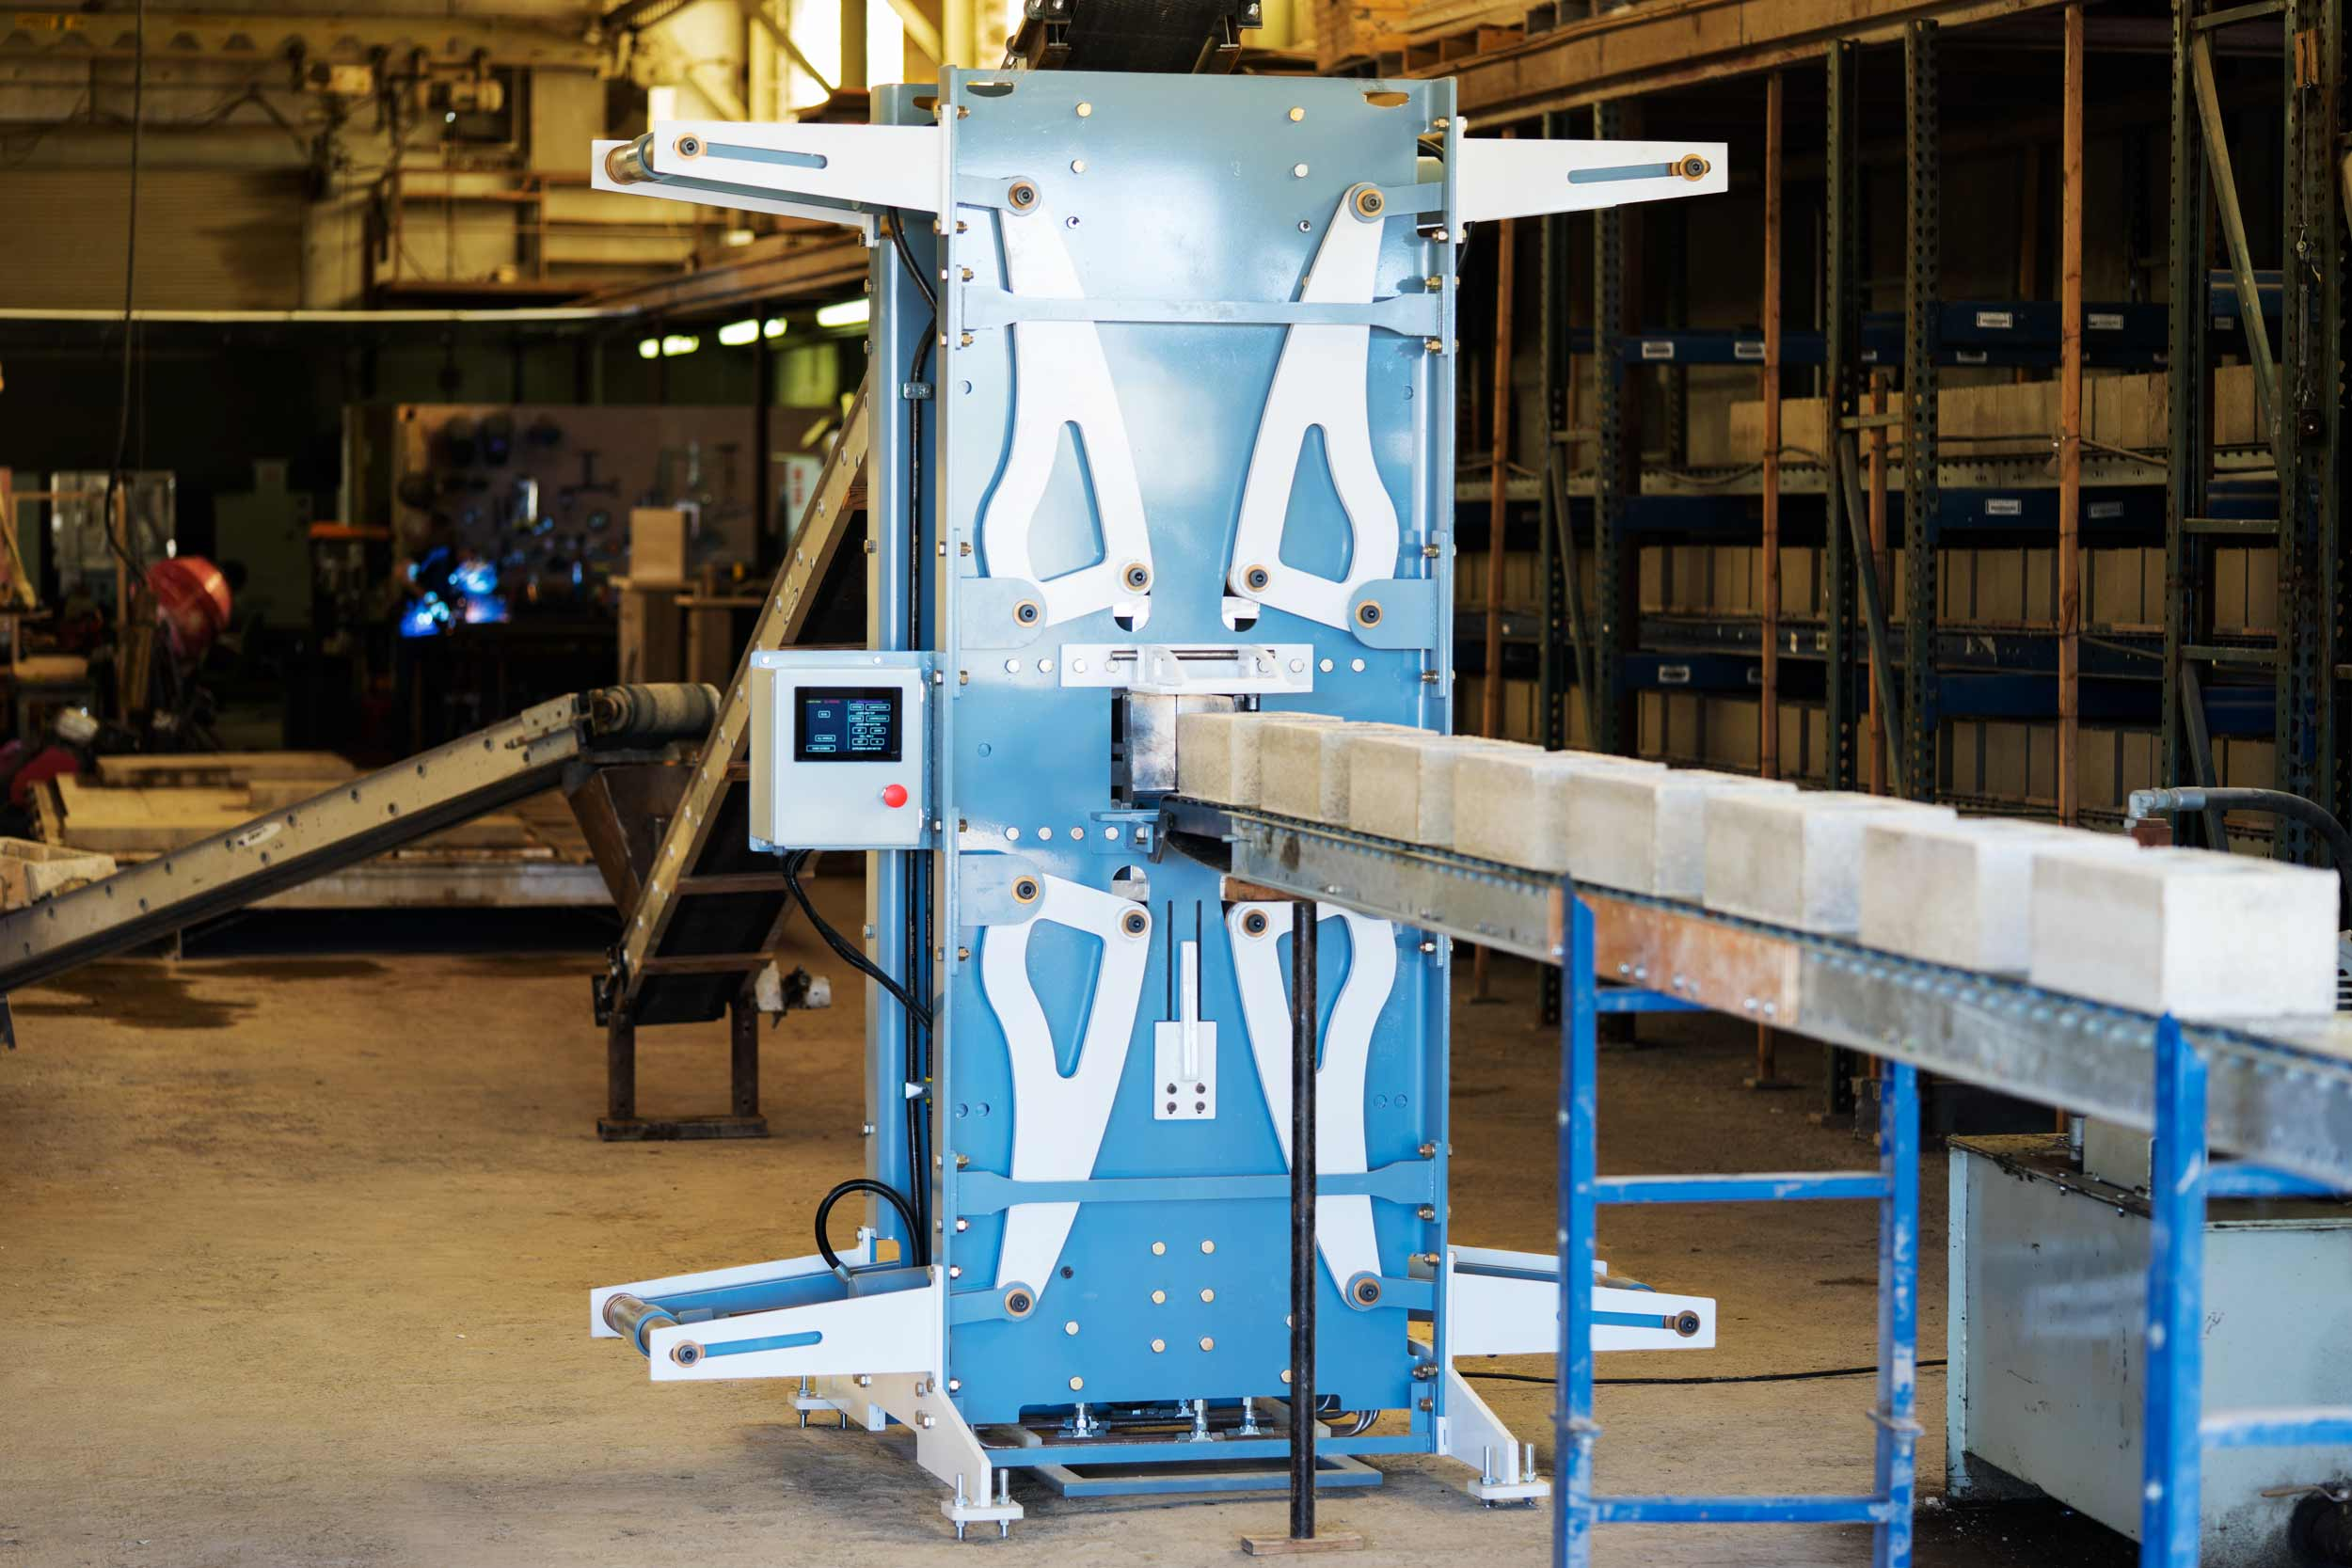 Watershed Materials' high compression masonry block machine imparts 500,000 pounds of compressive force to produce low cement alternatives to traditional concrete masonry units (CMUs).